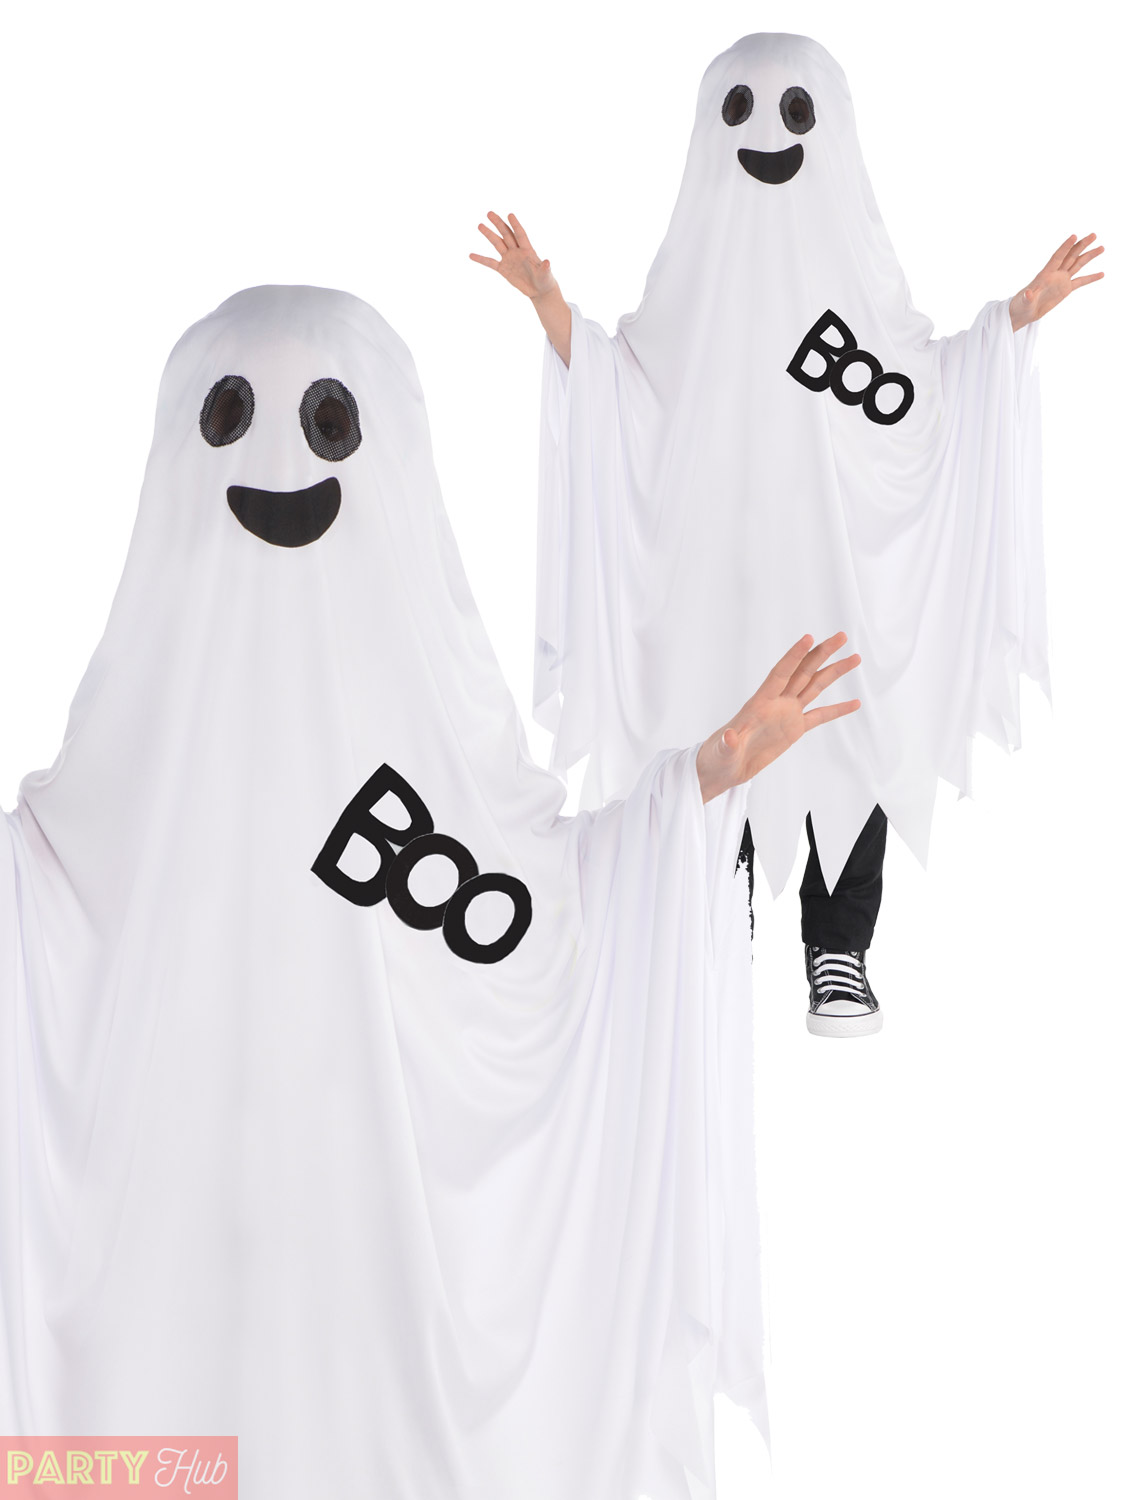 ... Picture 2 of 2  sc 1 st  eBay & Kids Ghost Cape Costume Fancy Dress Halloween One Size Cute Funny ...